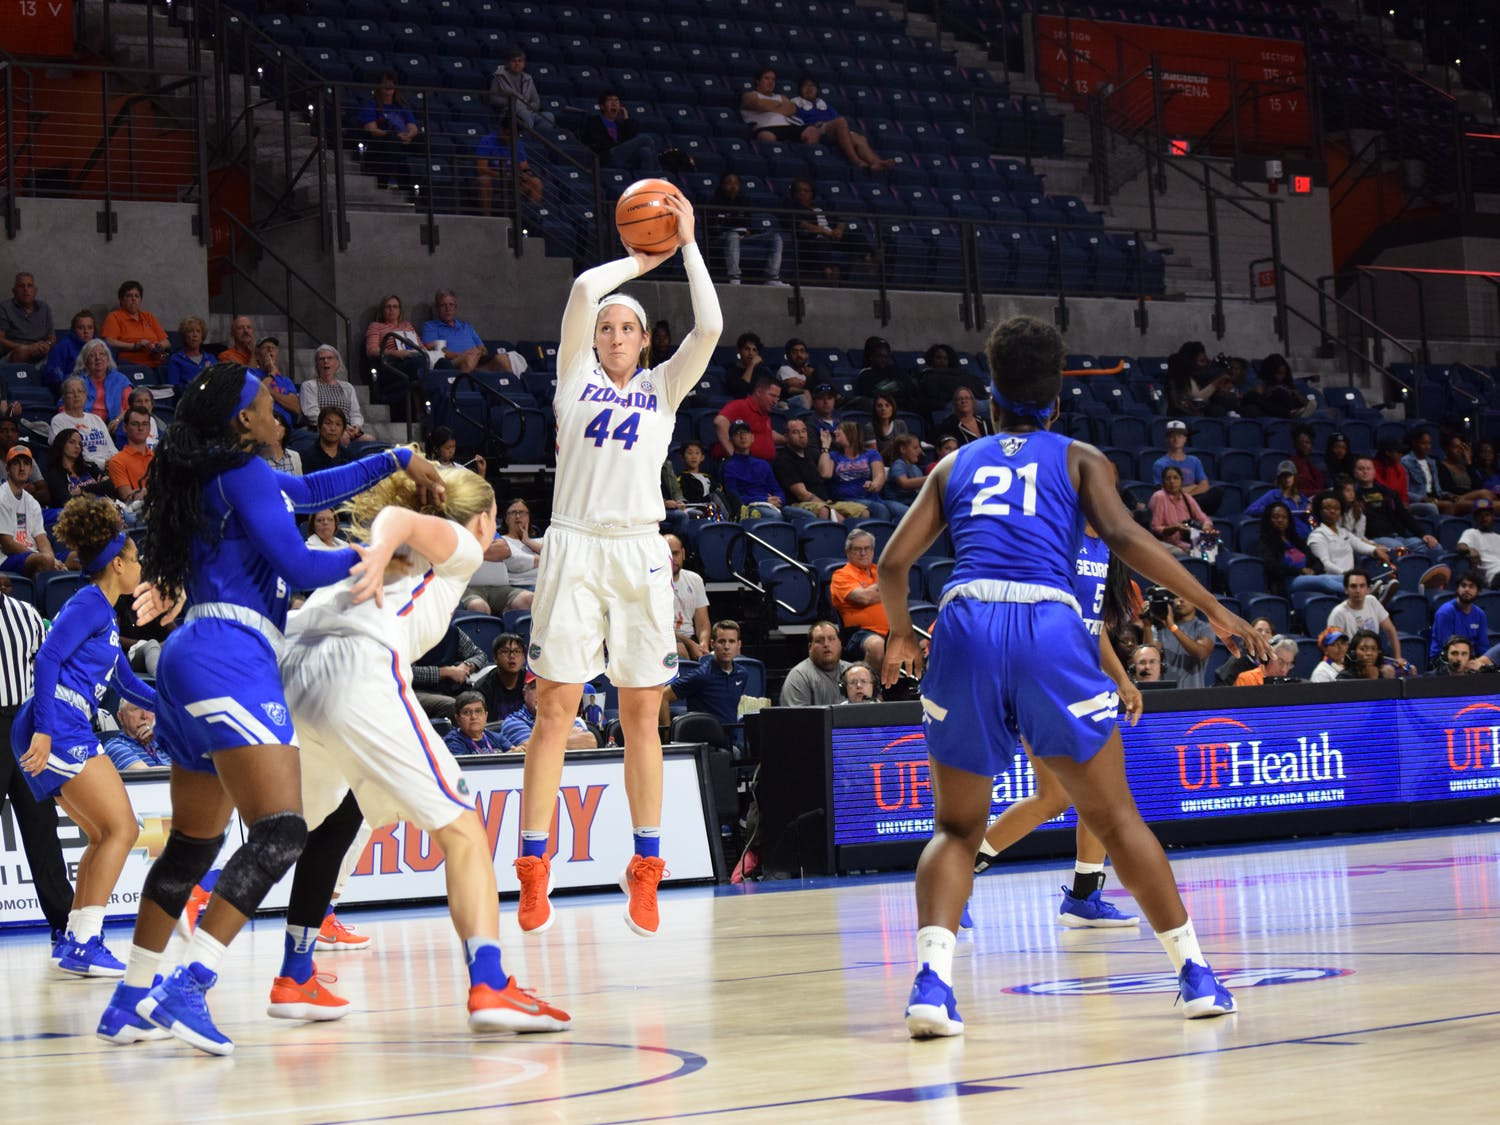 Haley Lorenzen ended the game with 14 points on 55 percent shooting from the field, but could not come up with a bucket late in Thursday night's against Alabama.